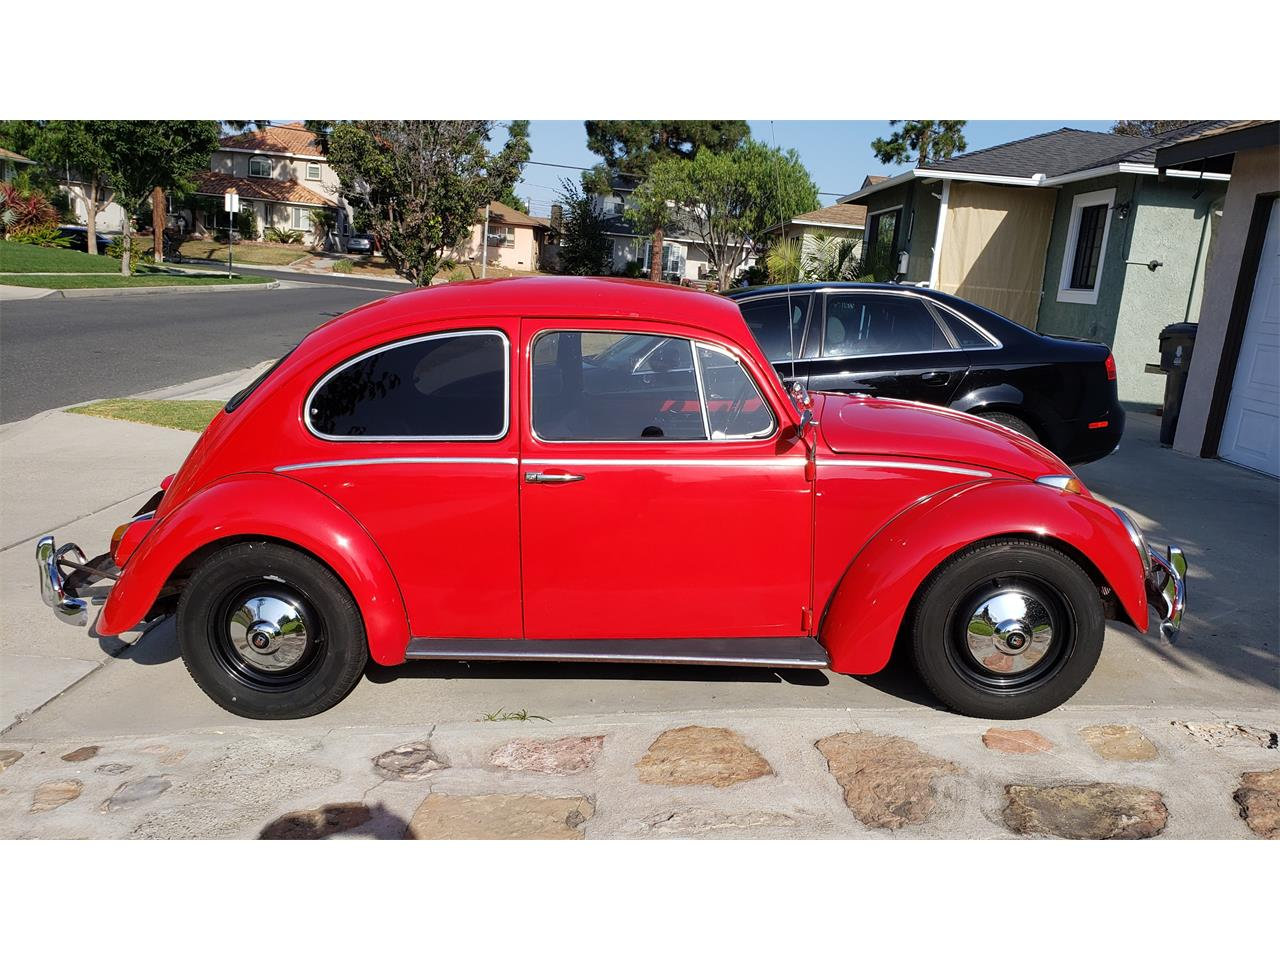 Large Picture of Classic '65 Beetle located in California - $12,000.00 Offered by a Private Seller - QXYY